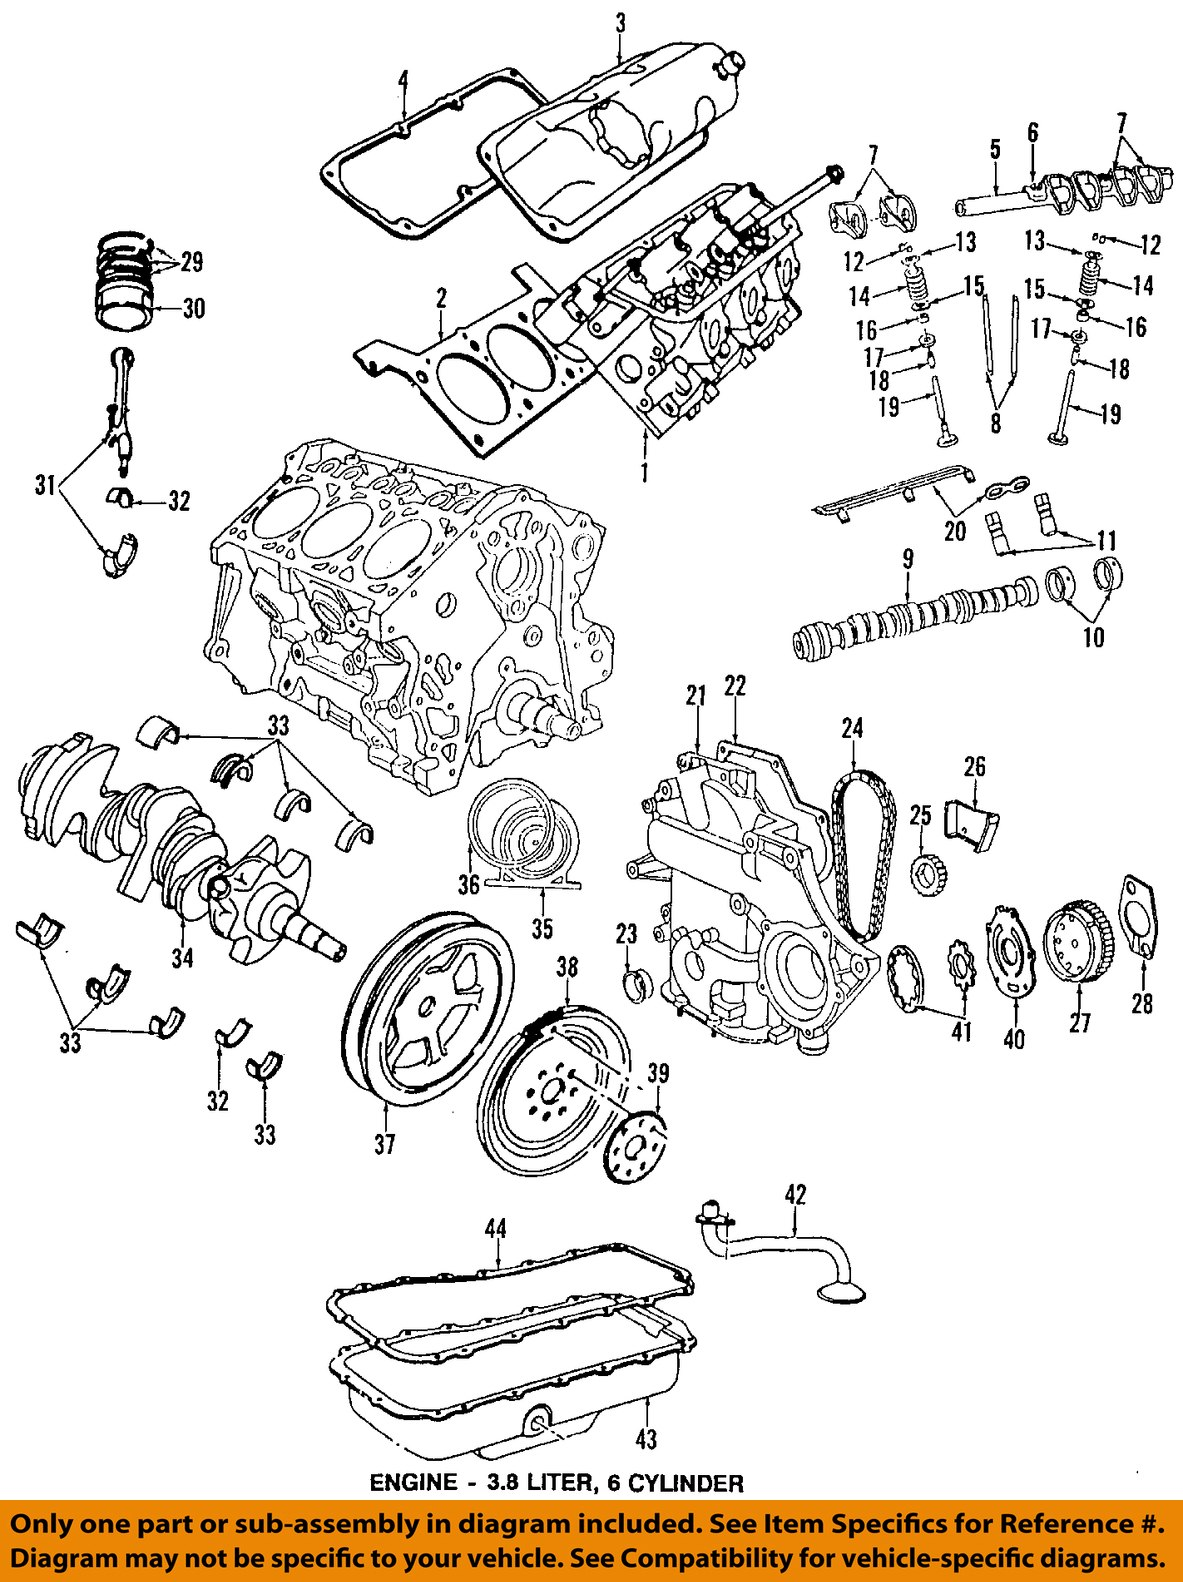 2013 wrangler engine diagram 2007 wrangler engine diagram oem mopar engine oil pump pickup tube 2007-2011 jeep ...